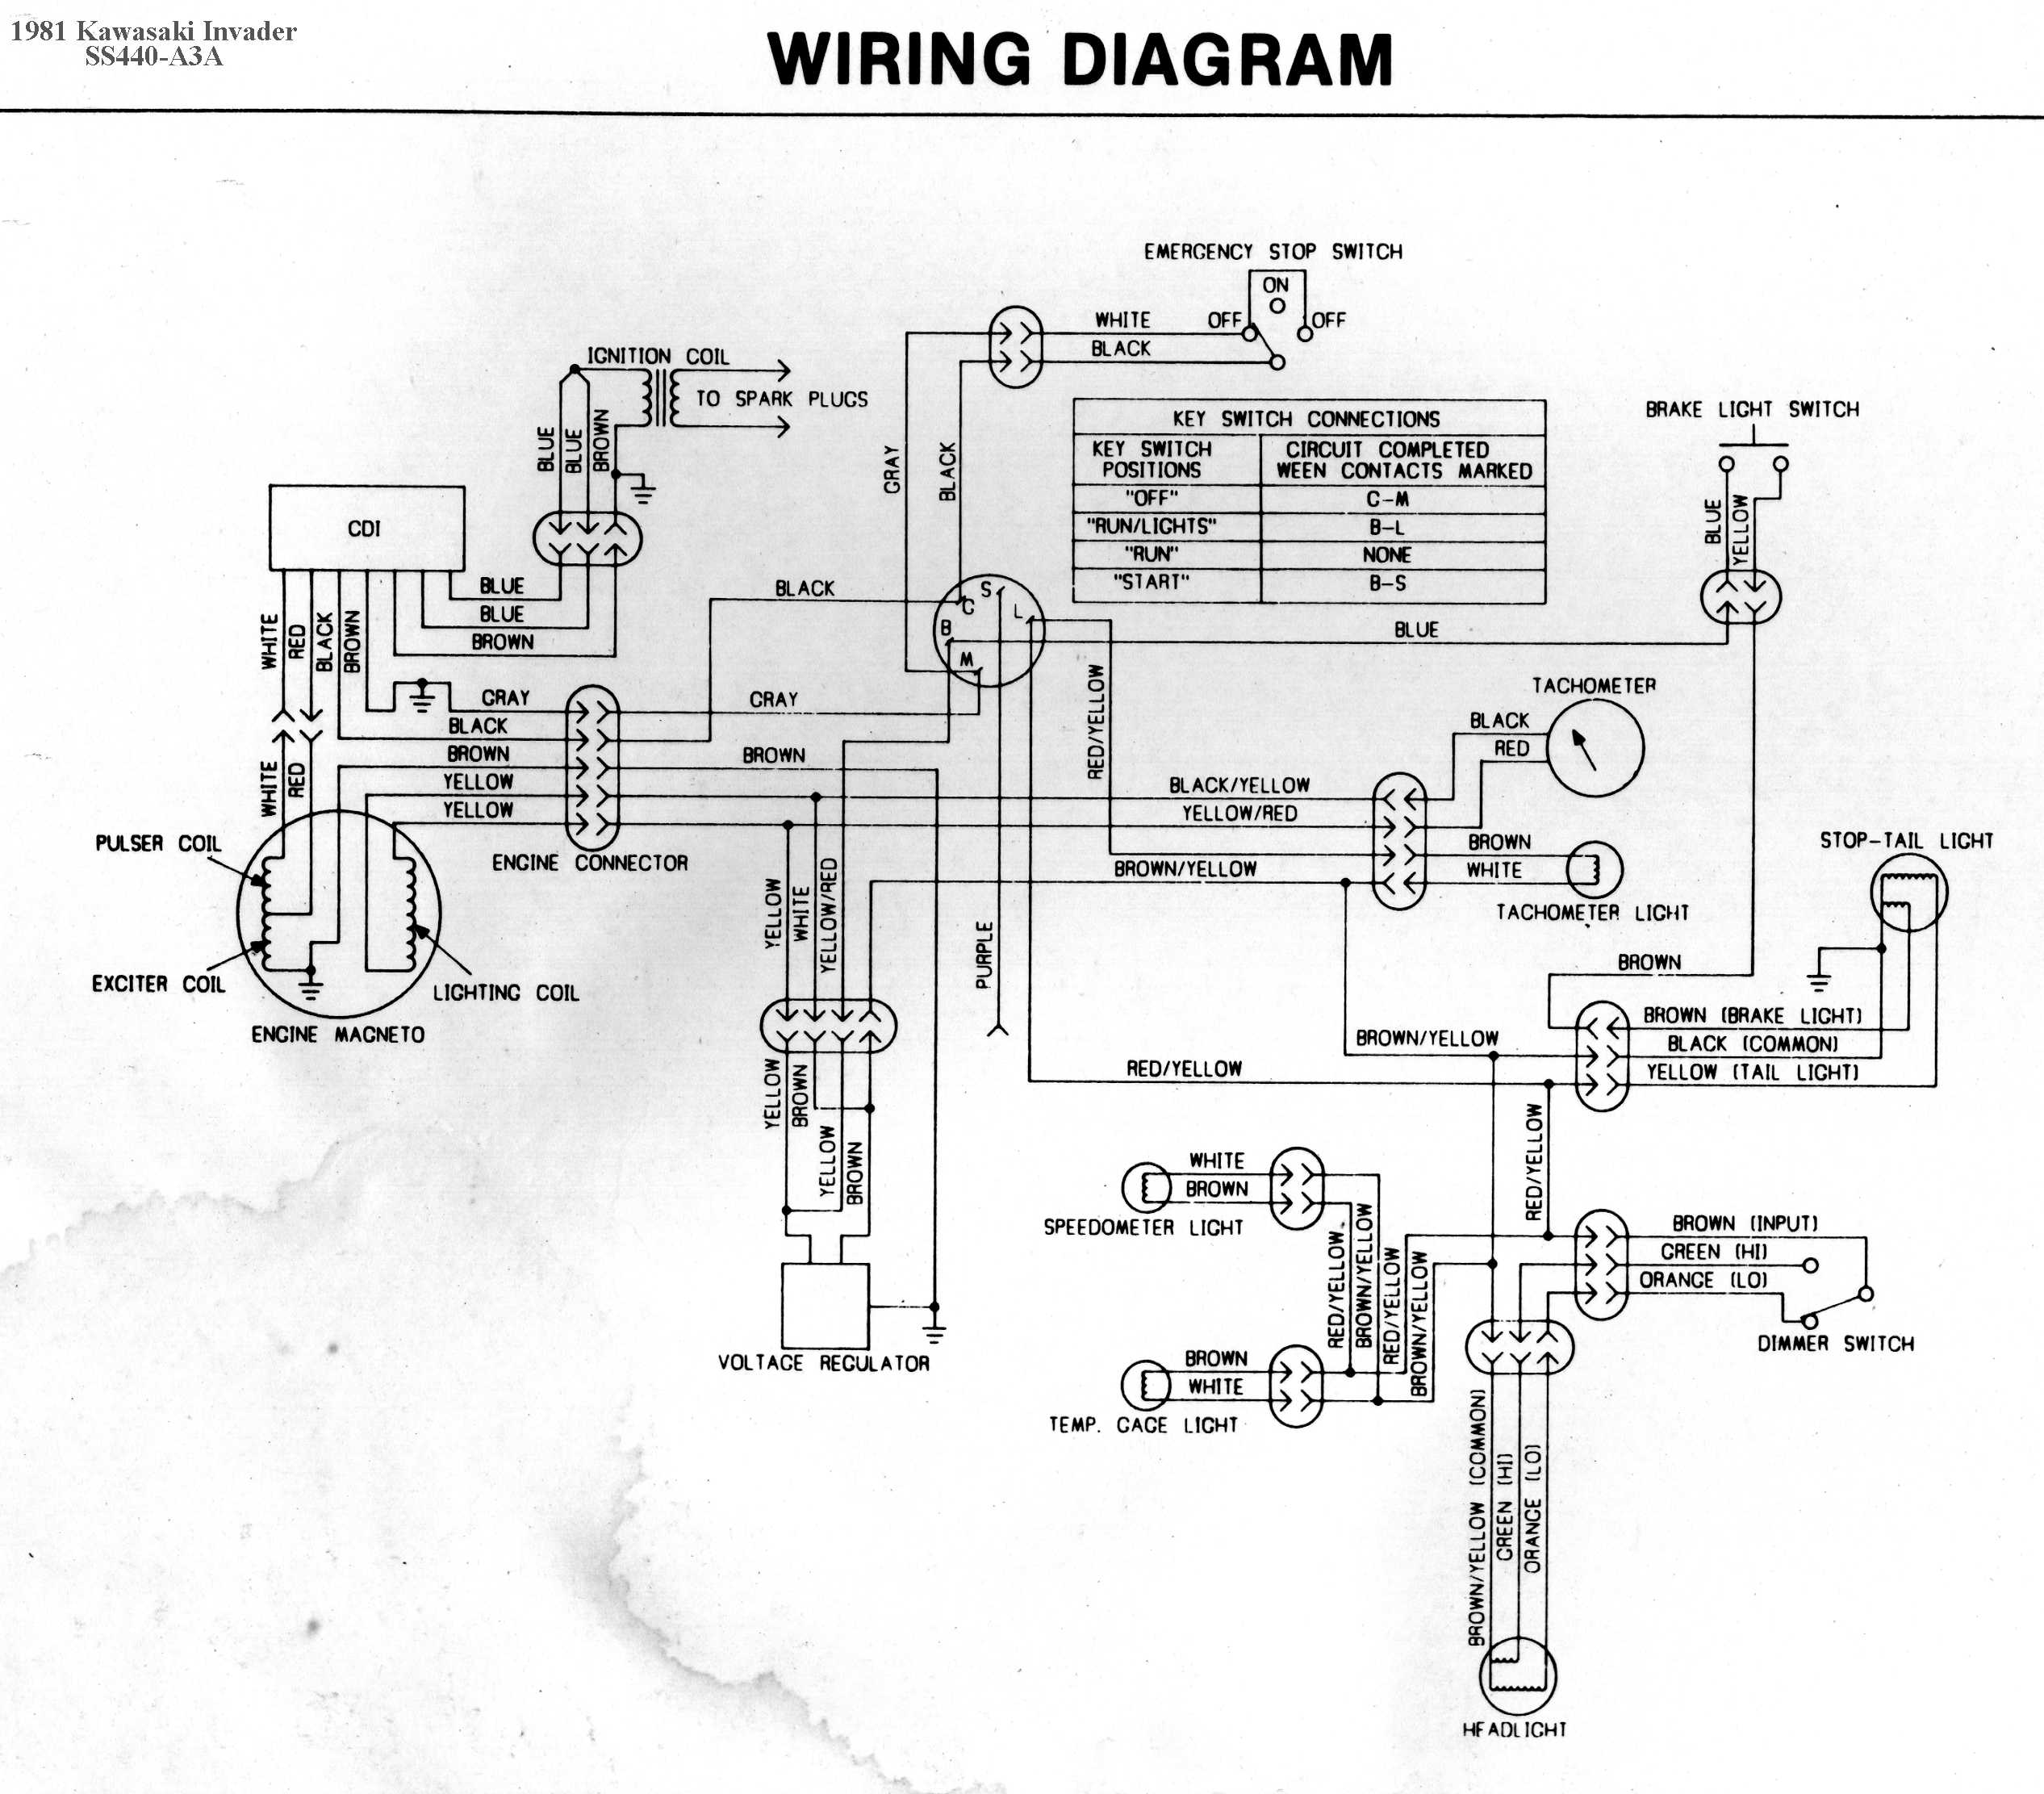 kawasaki voltage regulator wiring diagram snowmobile wiring diagram wiring diagram  snowmobile wiring diagram wiring diagram